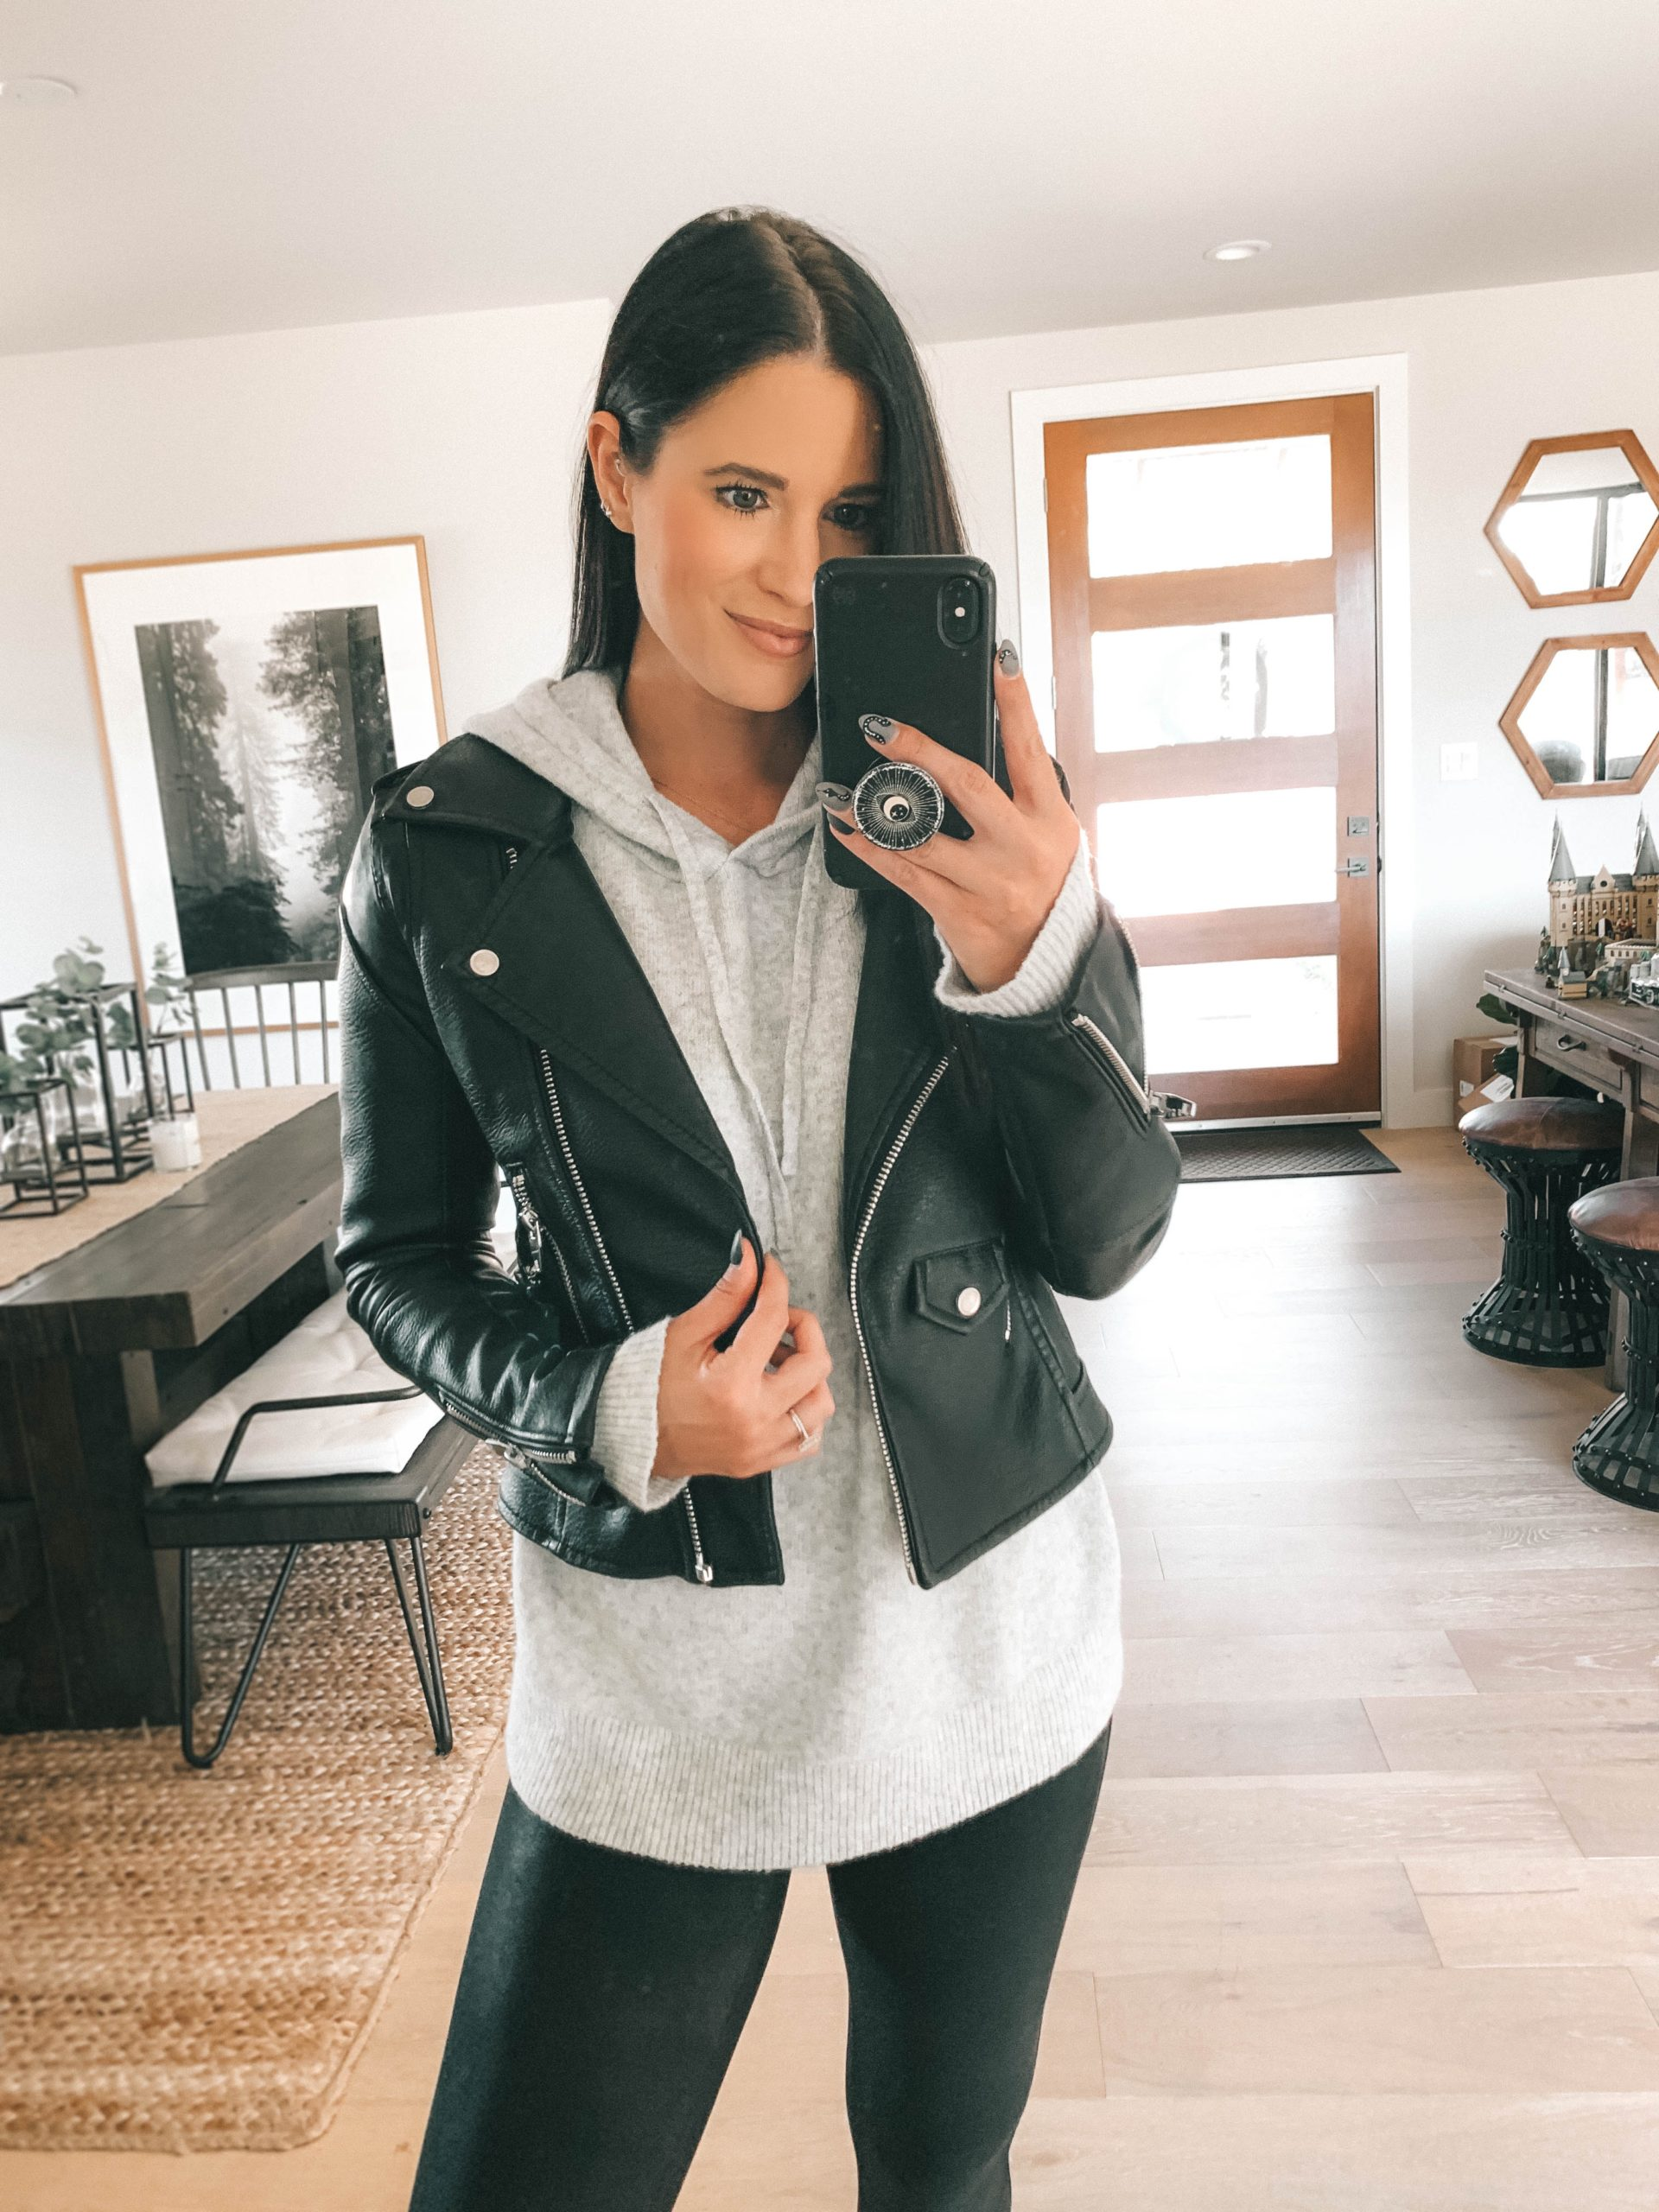 Nordstrom Anniversary Sale by popular Austin fashion blog, Dressed to Kill: image of a woman wearing a black faux leather jacket, grey hoodie sweater, and black faux leather leggings.